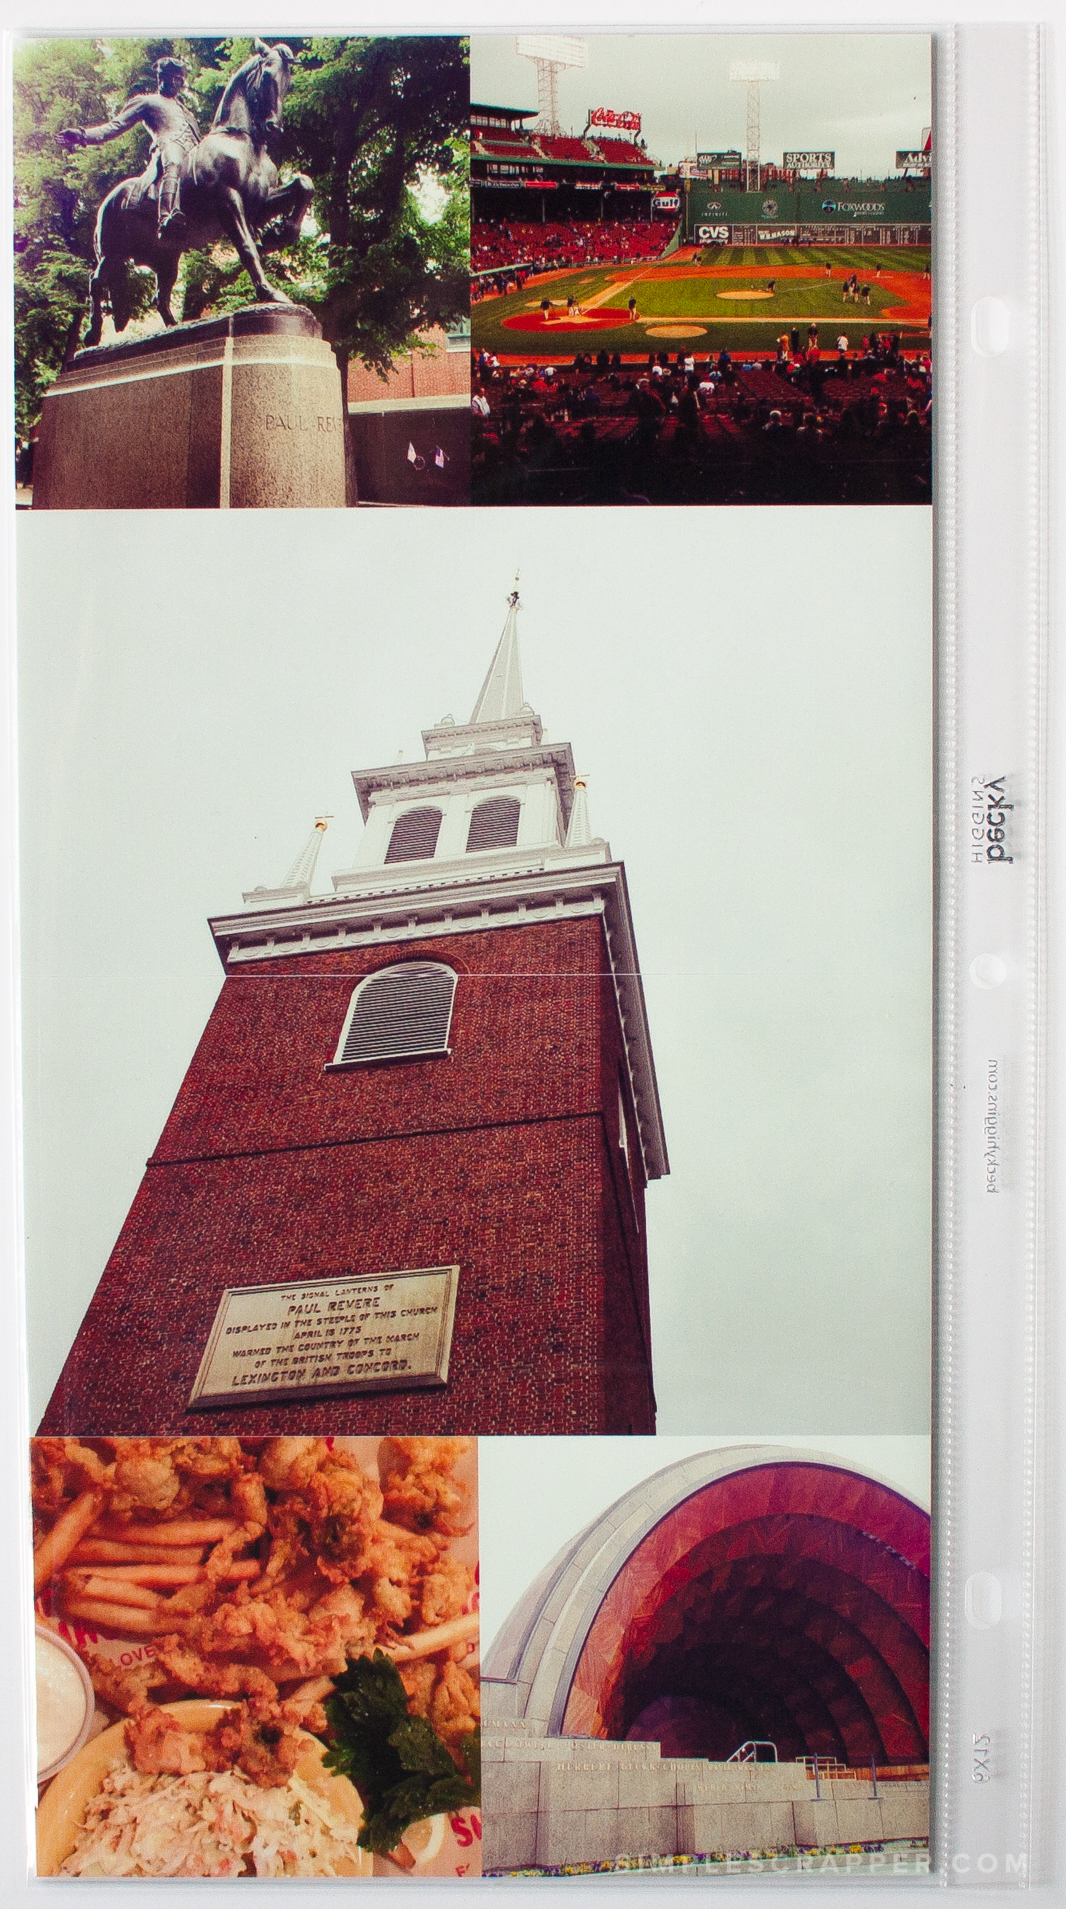 Our Boston Adventure in Photos | Simple Scrapbook Layout